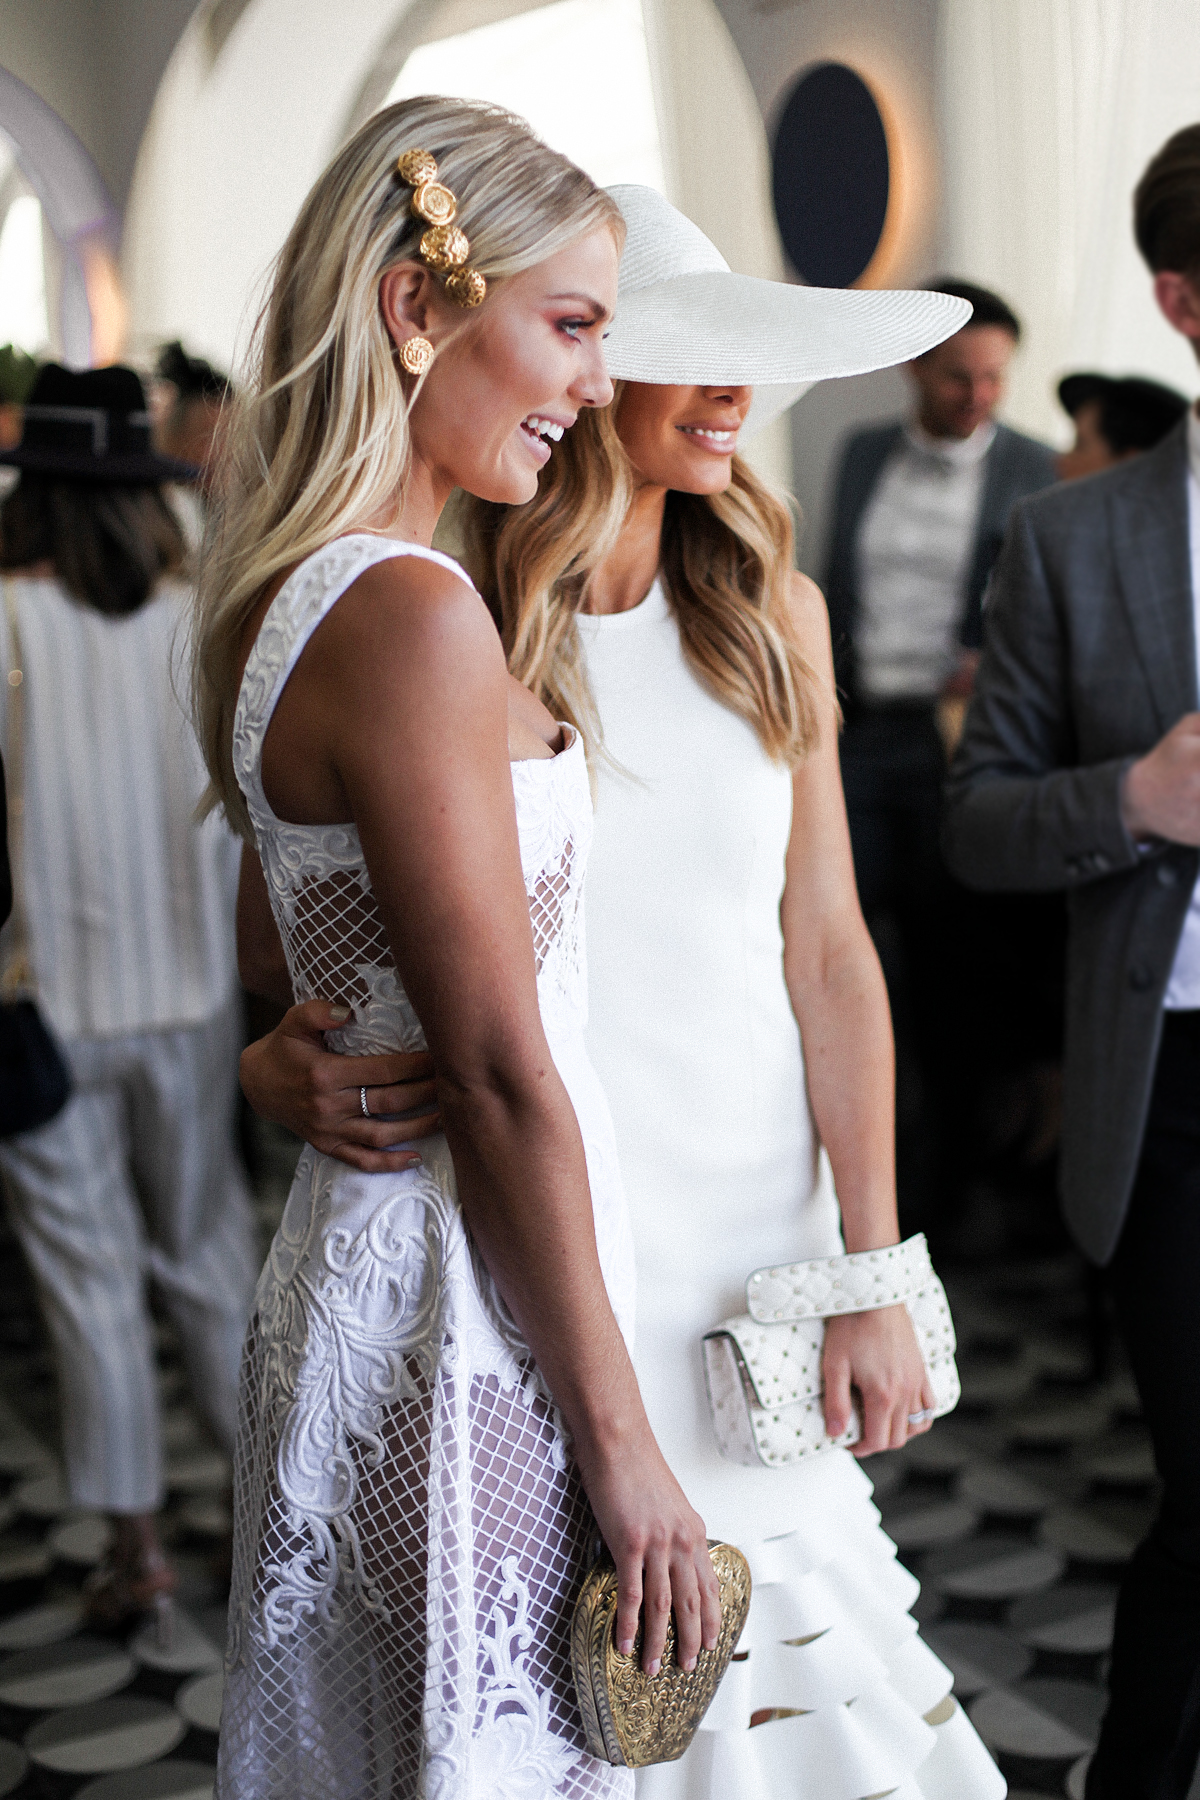 Elyse Knowles & Nadia Bartel at Derby Day